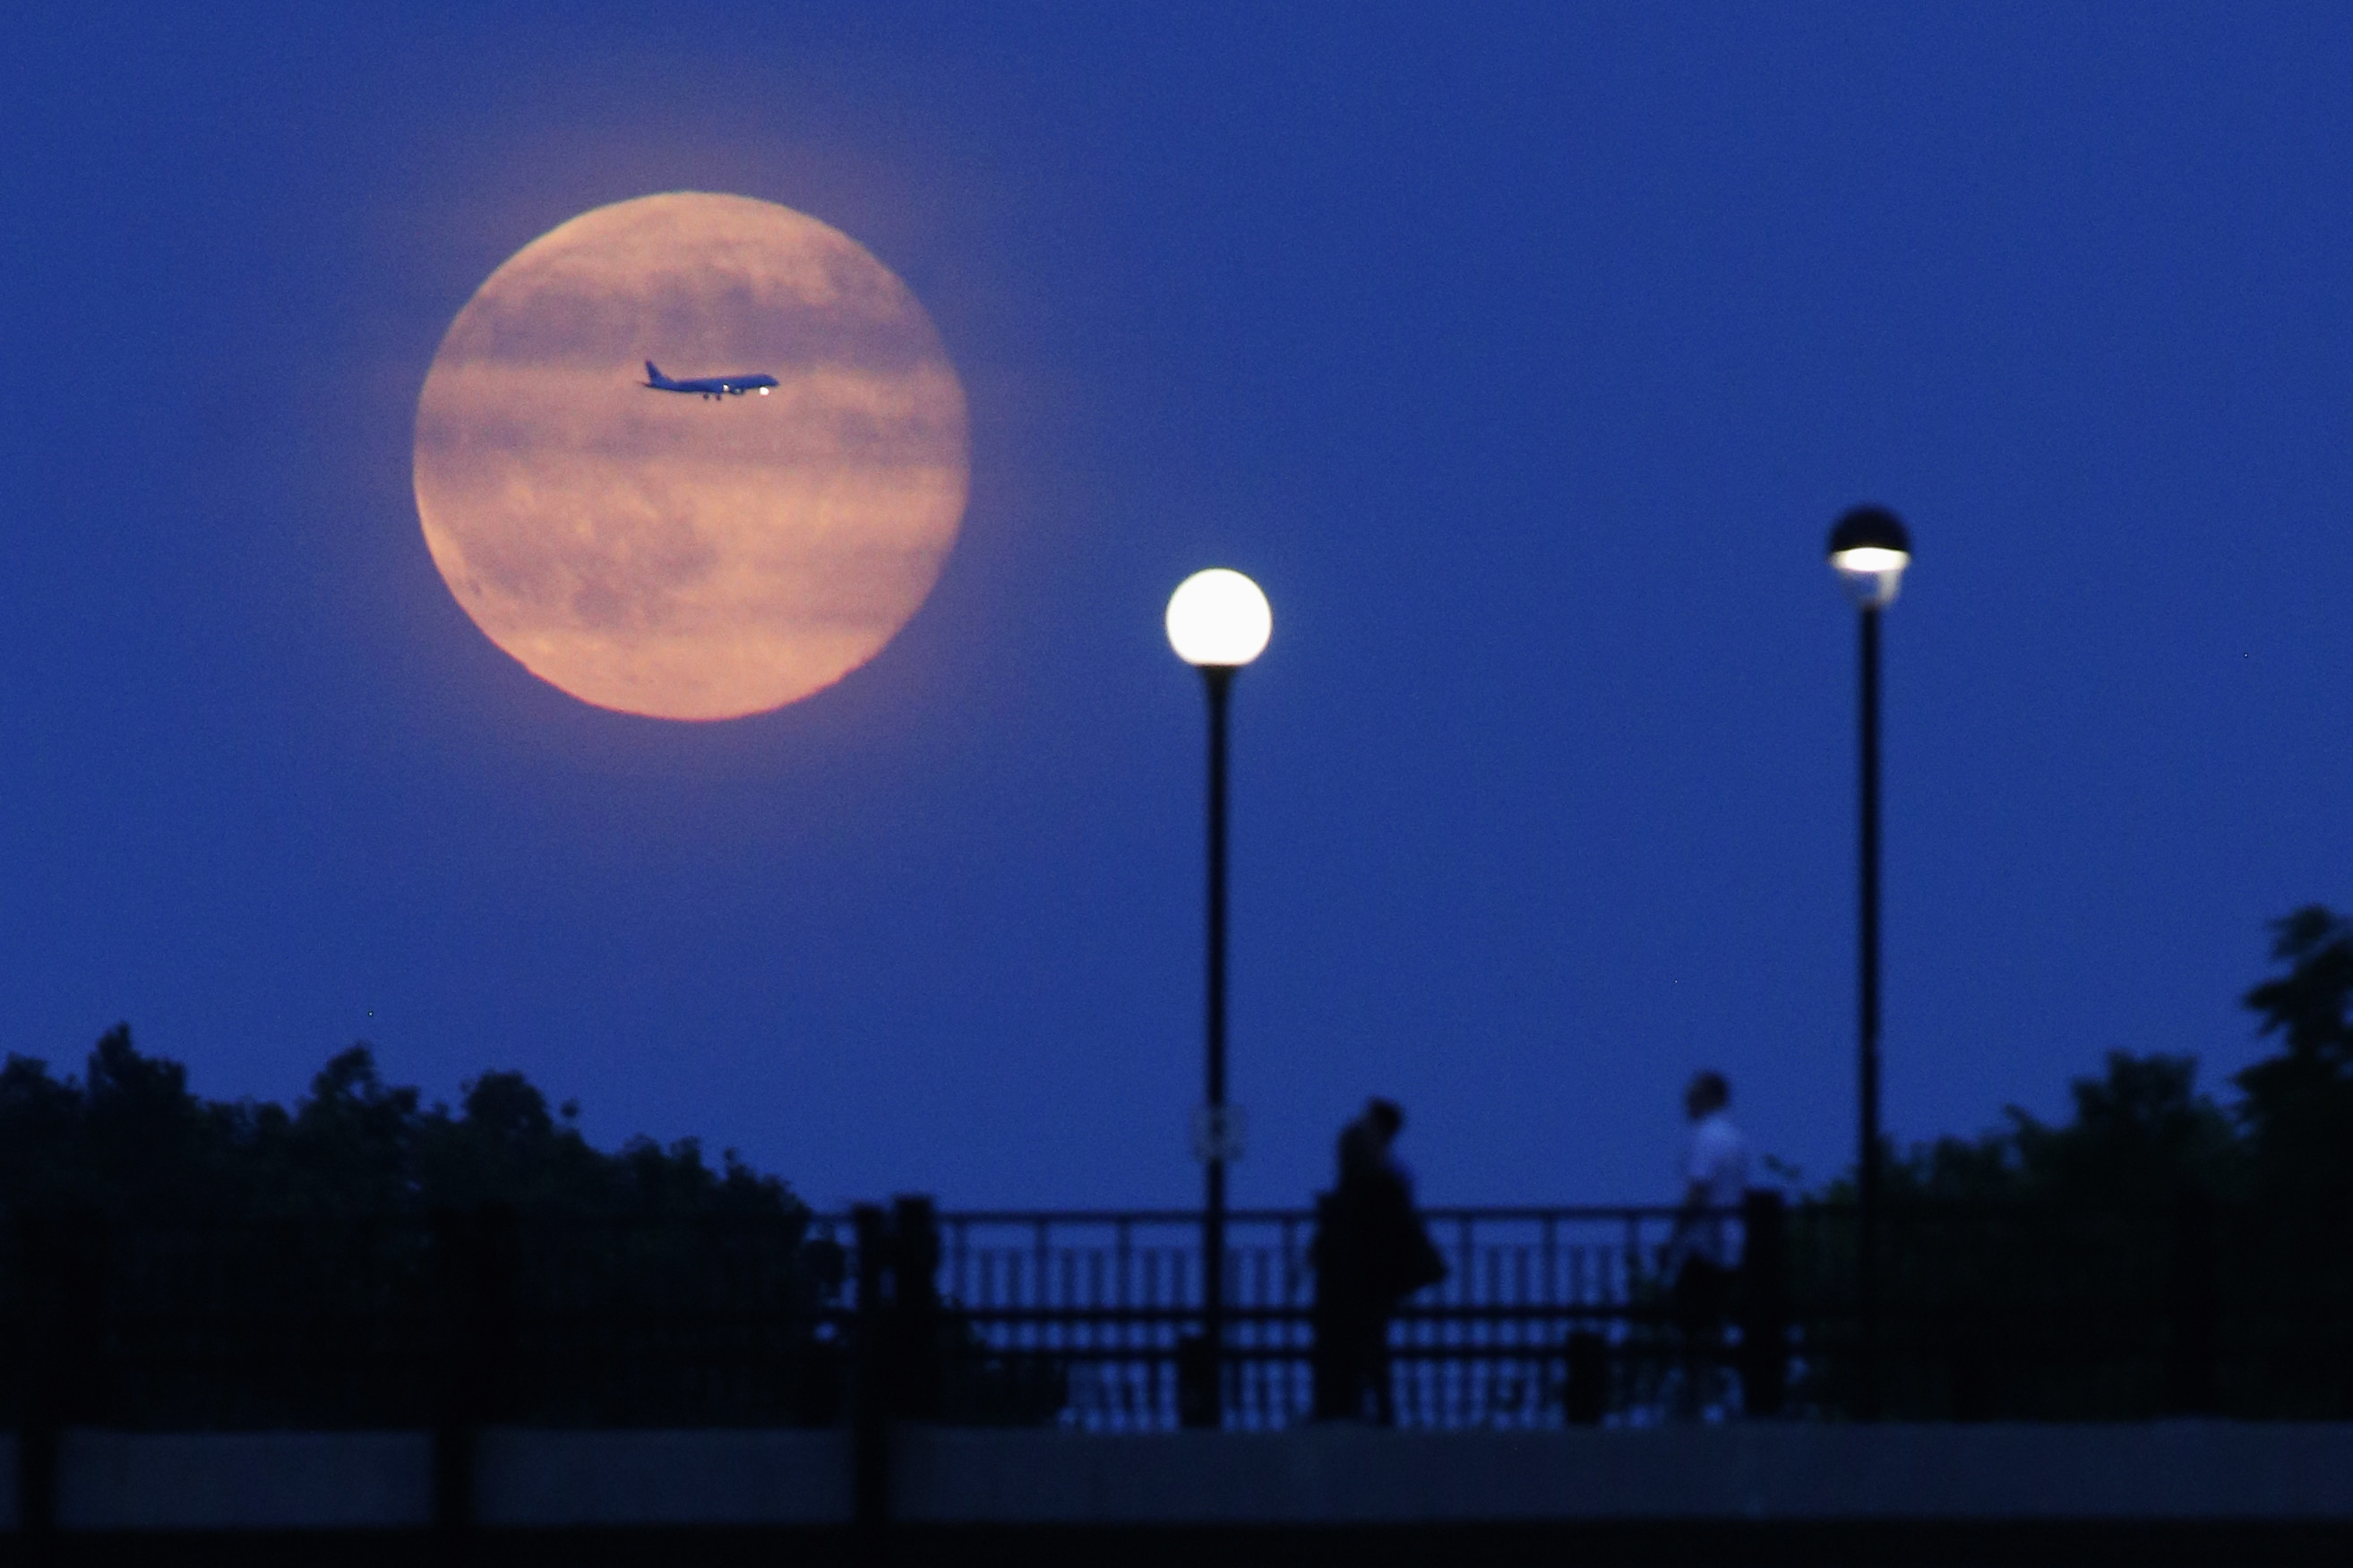 Aircraft passes in front of a Supermoon rising over the Rideau Canal in Ottawa July 12, 2014. Occurring when a full moon or new moon coincides with the closest approach the moon makes to the Earth, the Supermoon results in a larger-than-usual appearance of the lunar disk.    REUTERS/Blair Gable (CANADA - Tags: SOCIETY TRANSPORT ENVIRONMENT TPX IMAGES OF THE DAY) - GM1EA7D0SBK01